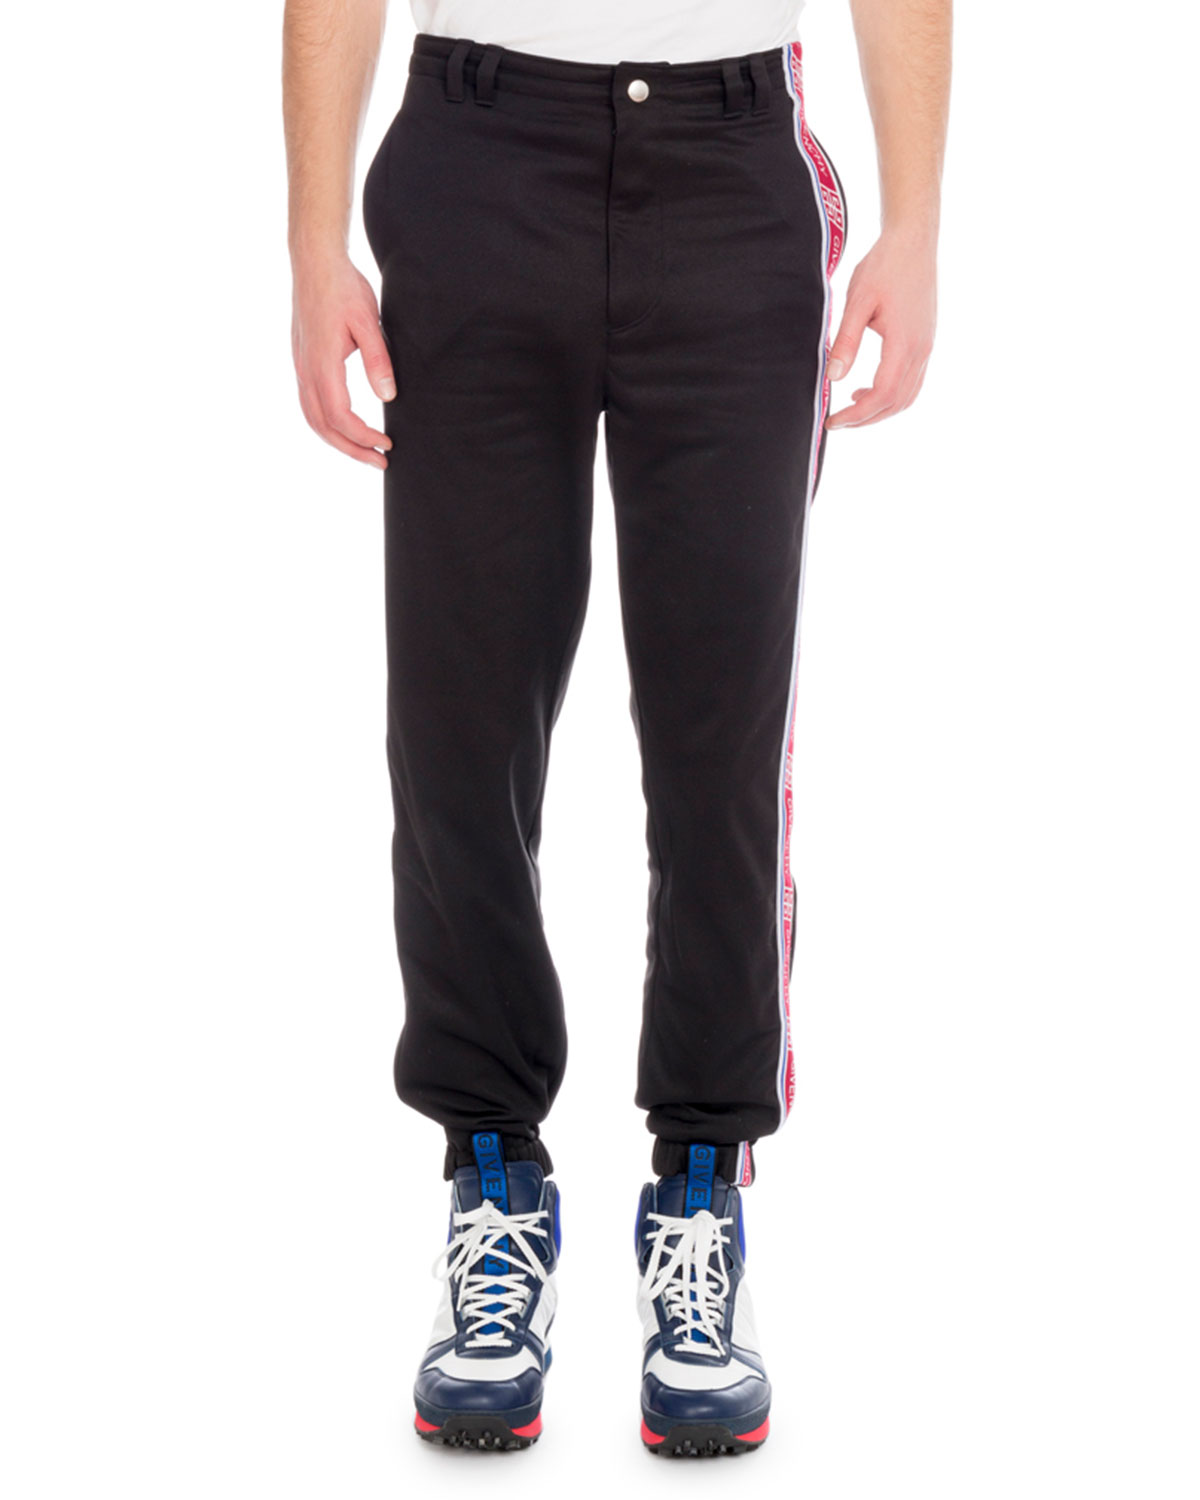 Men's Track Suit Jogger Pants by Givenchy